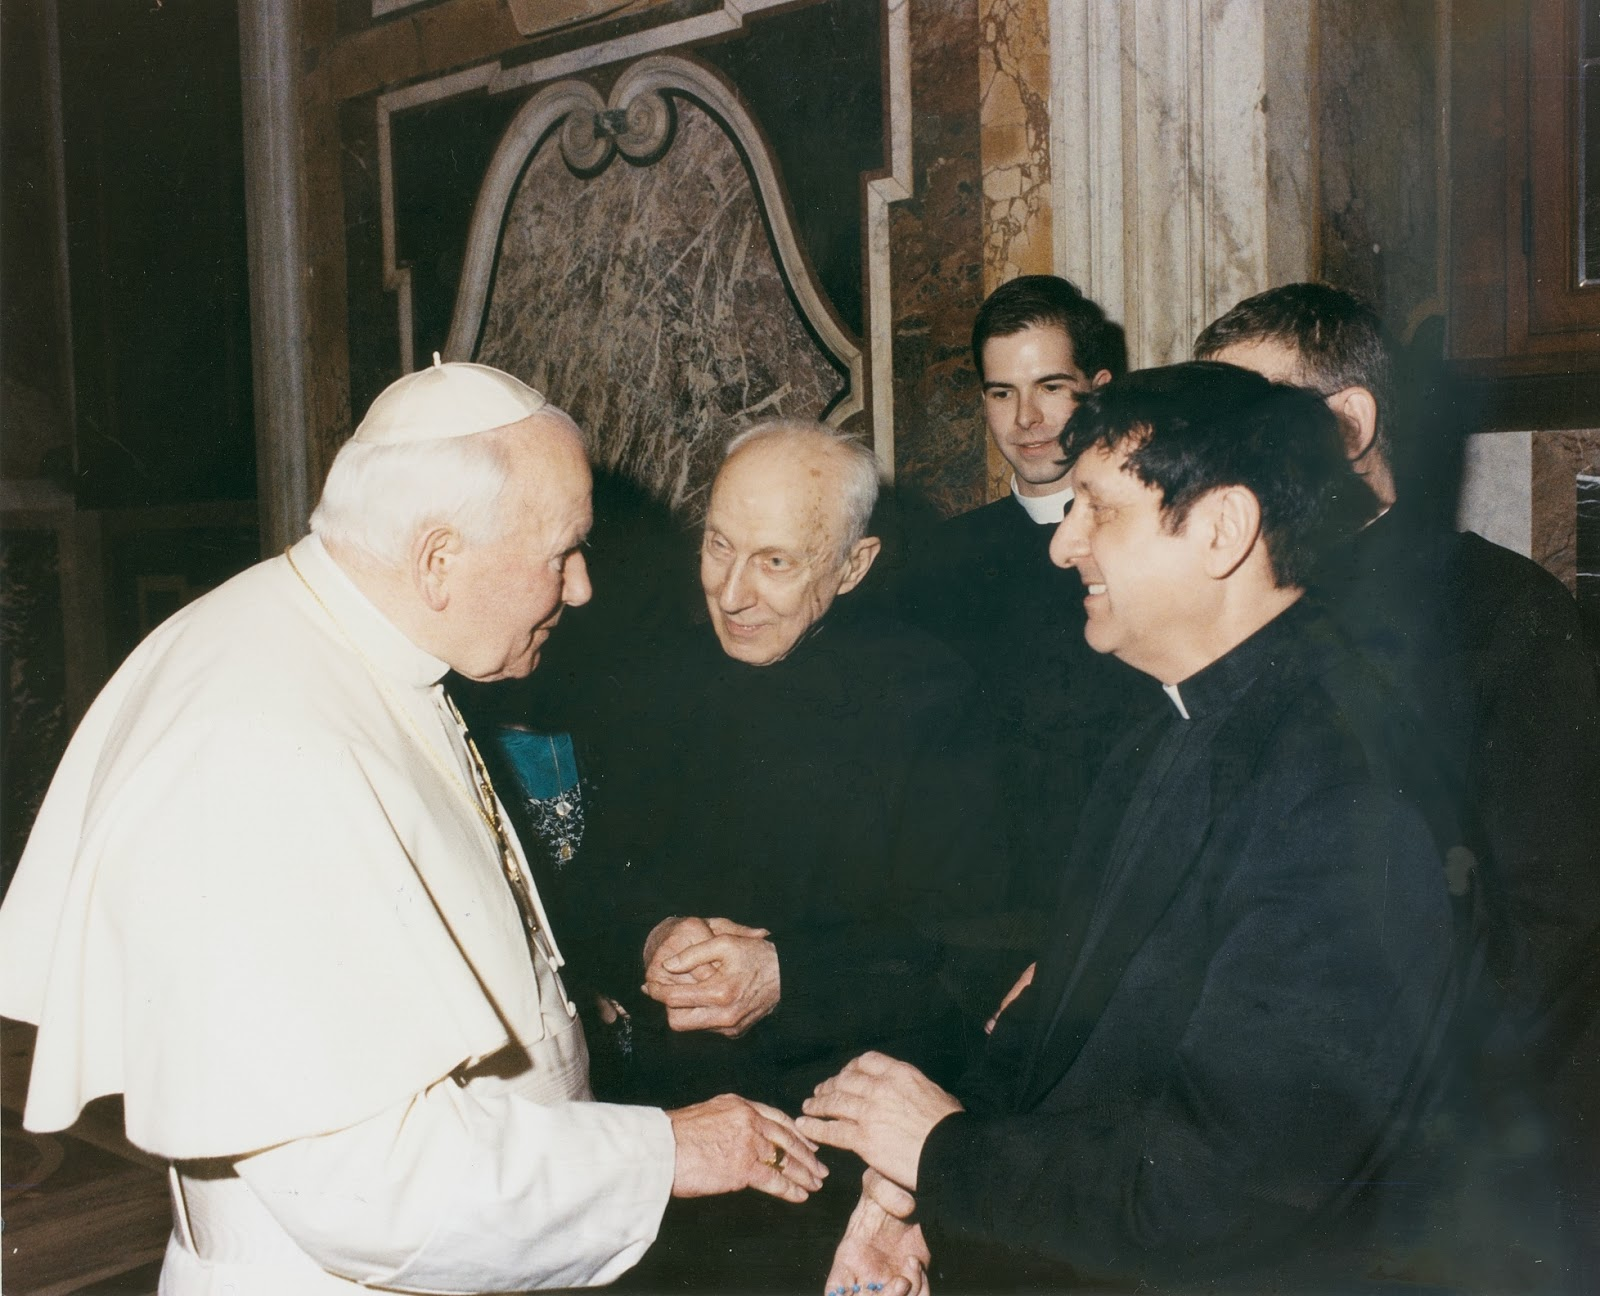 The Cardinal Wuerl Aftermath A destroyers legacy of